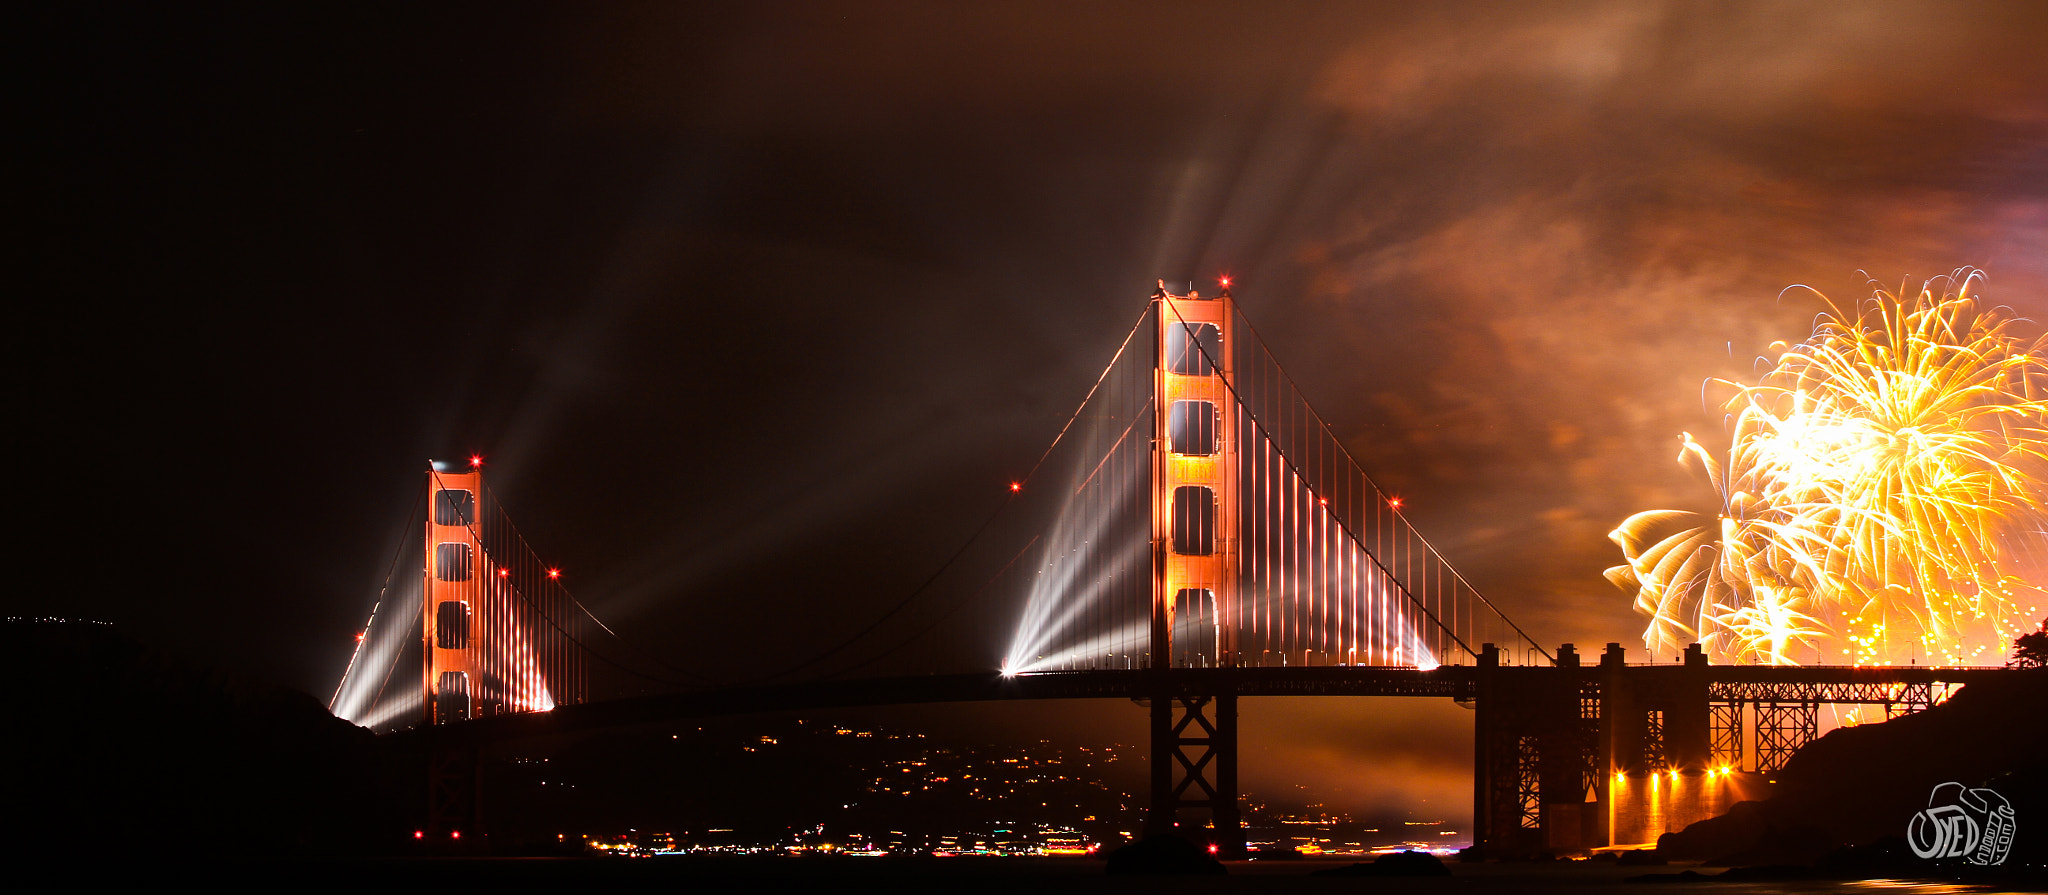 Photograph The Magnificent Golden Gate by Syed Abbas on 500px